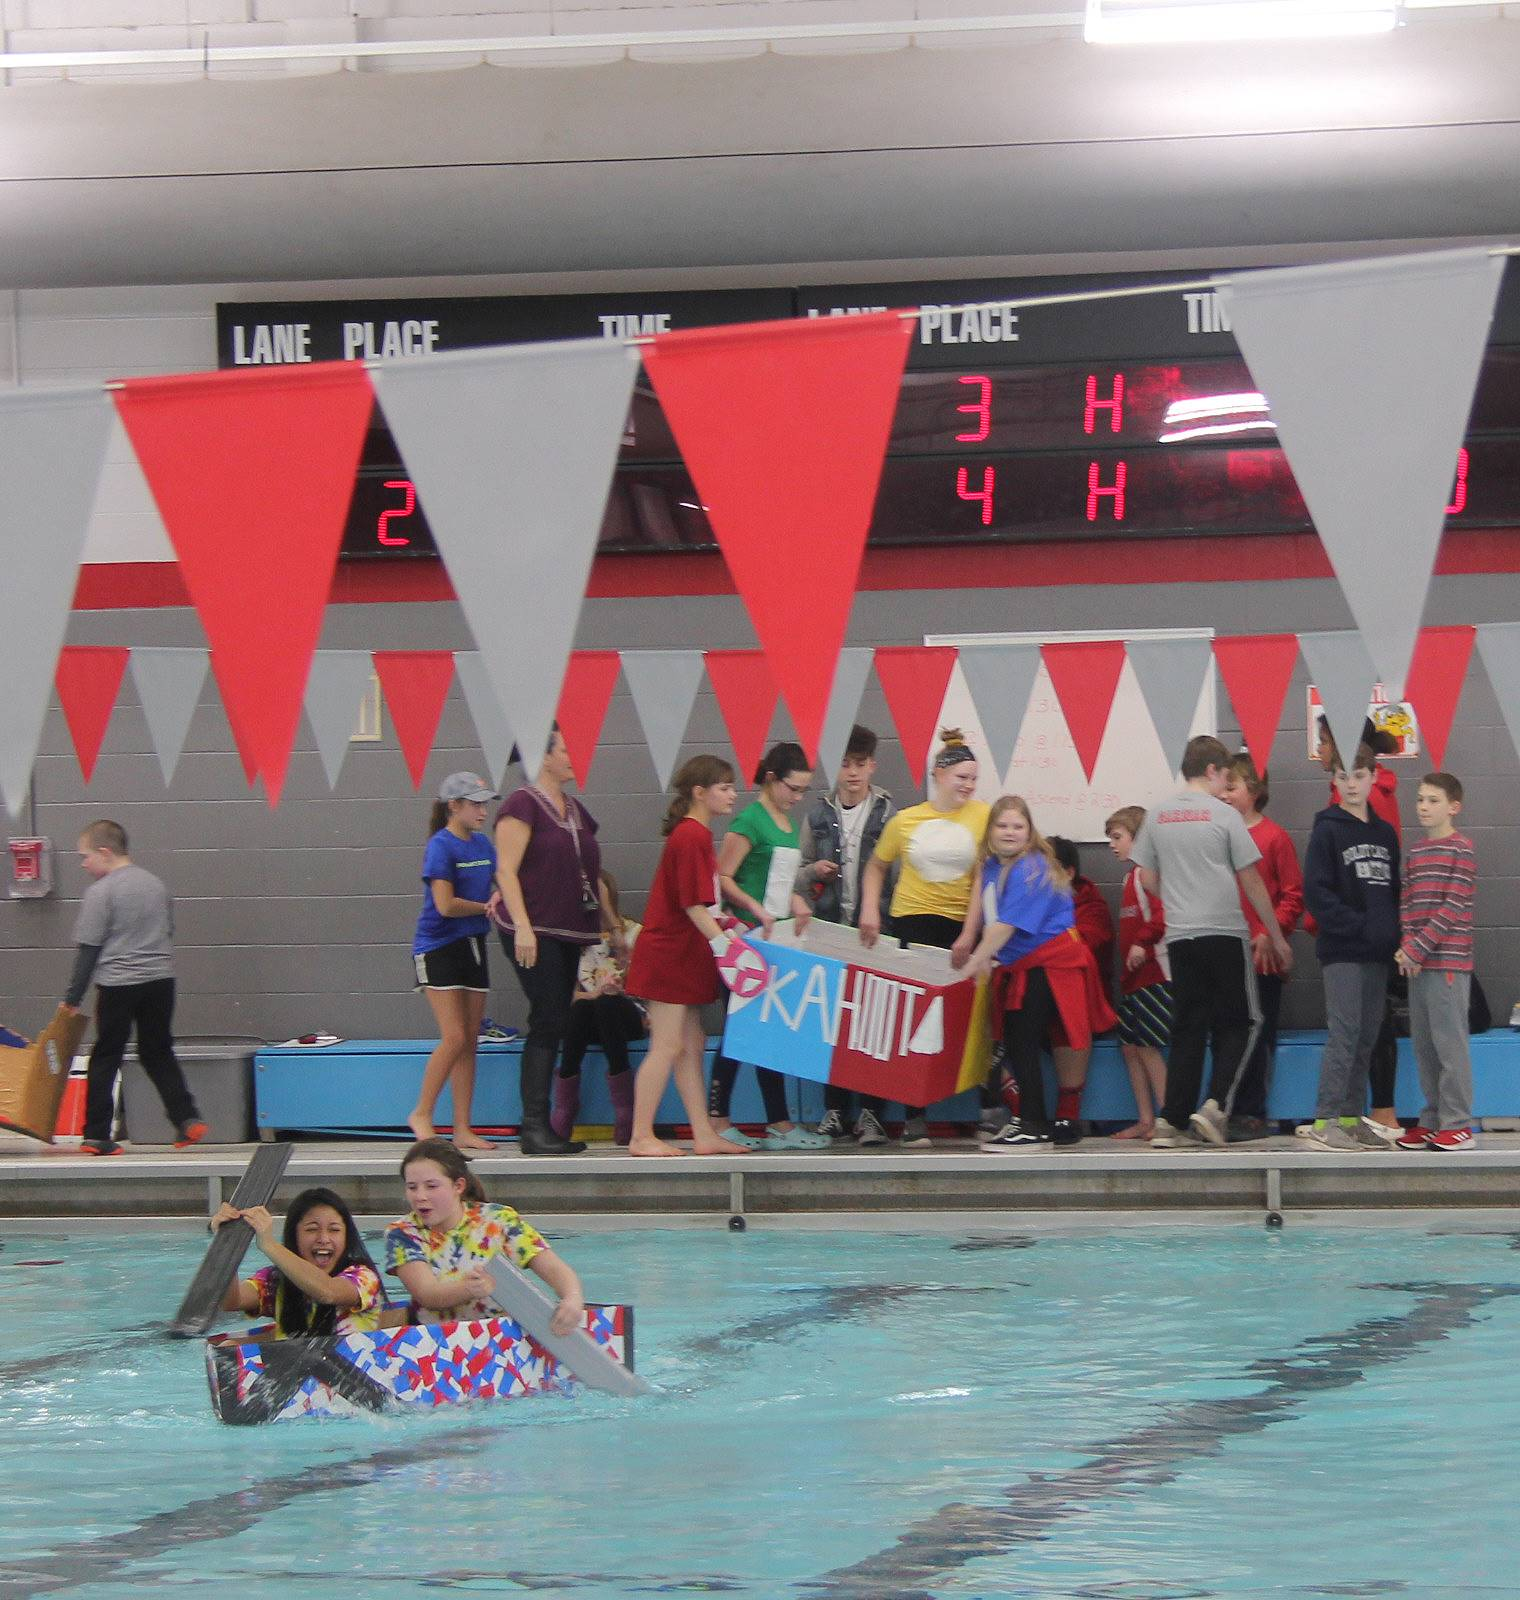 wide shot of two students competing in cardboard boat race